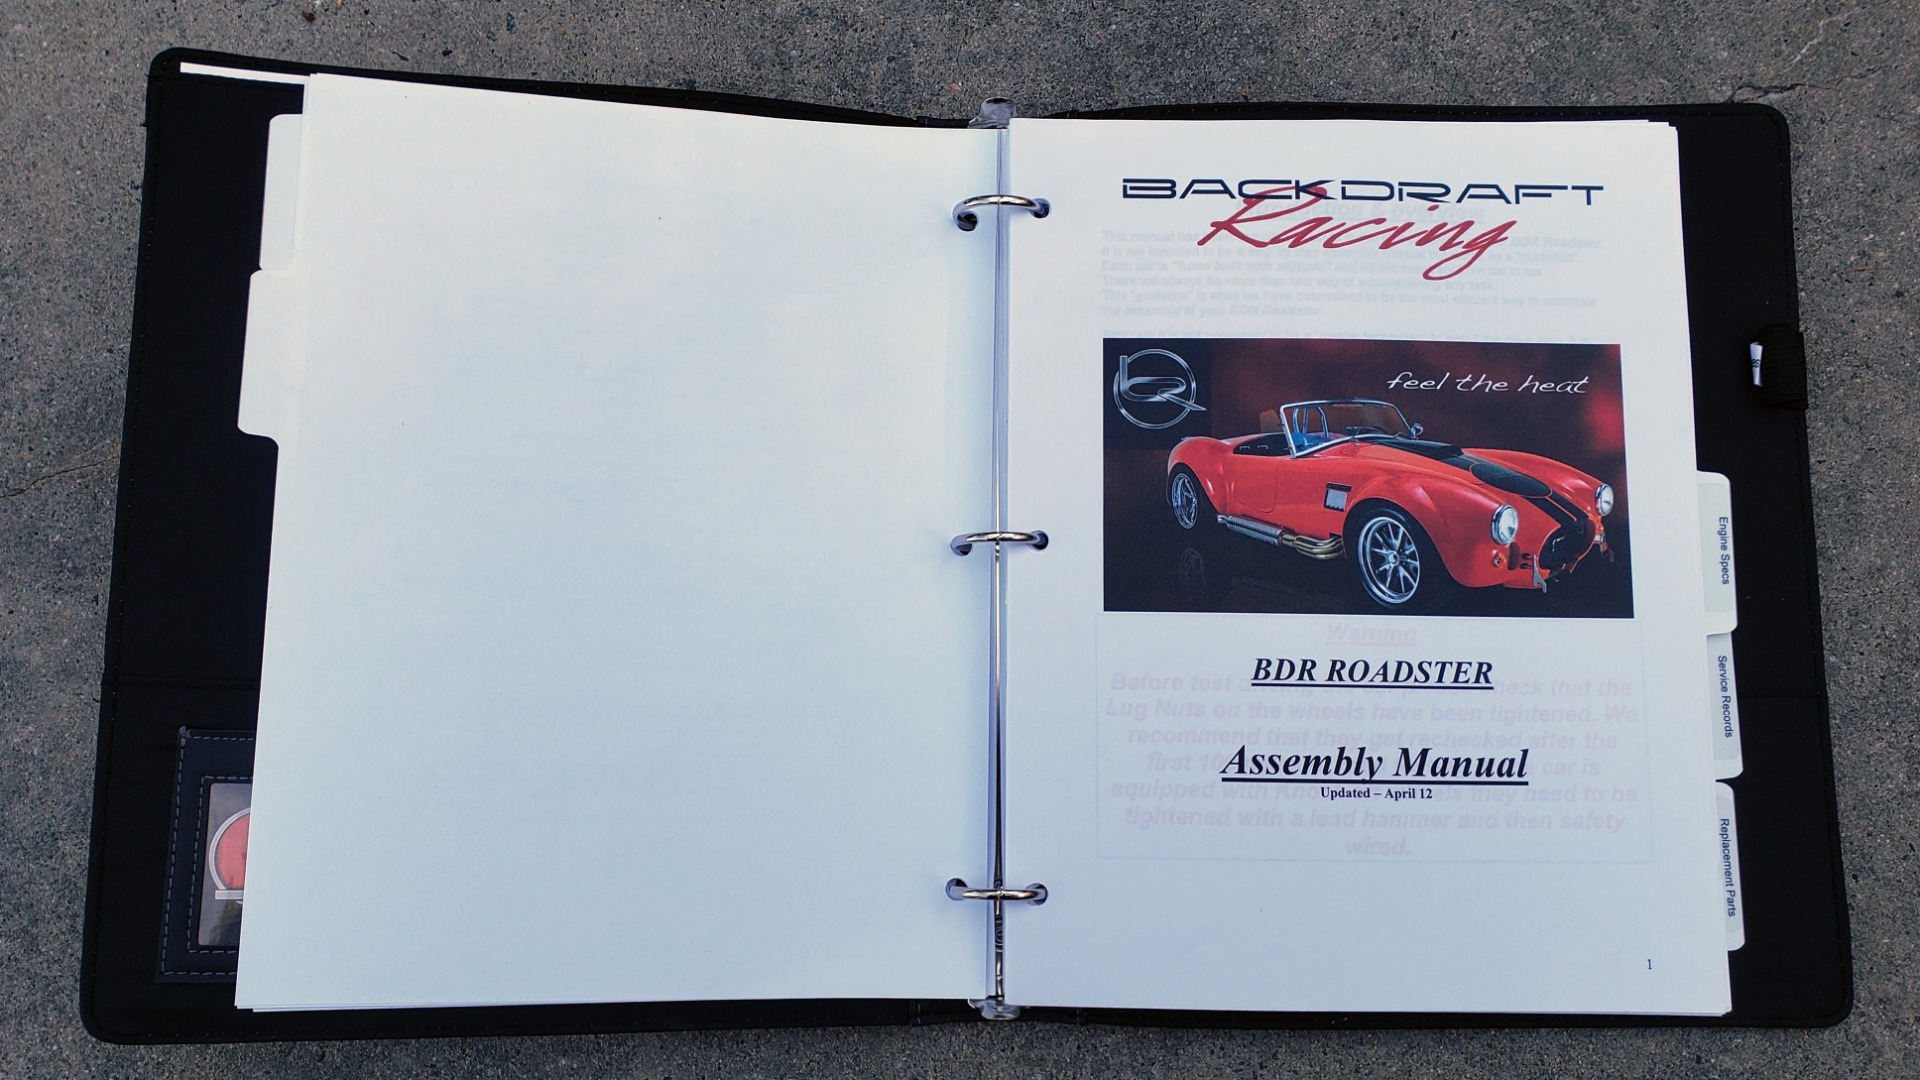 Used 1965 Ford COBRA 427 ROADSTER BY BRACKDRAFT RACING ROUSH 553HP V8 / TREMEC 6-SPD / PWR STRNG for sale $74,999 at Formula Imports in Charlotte NC 28227 77